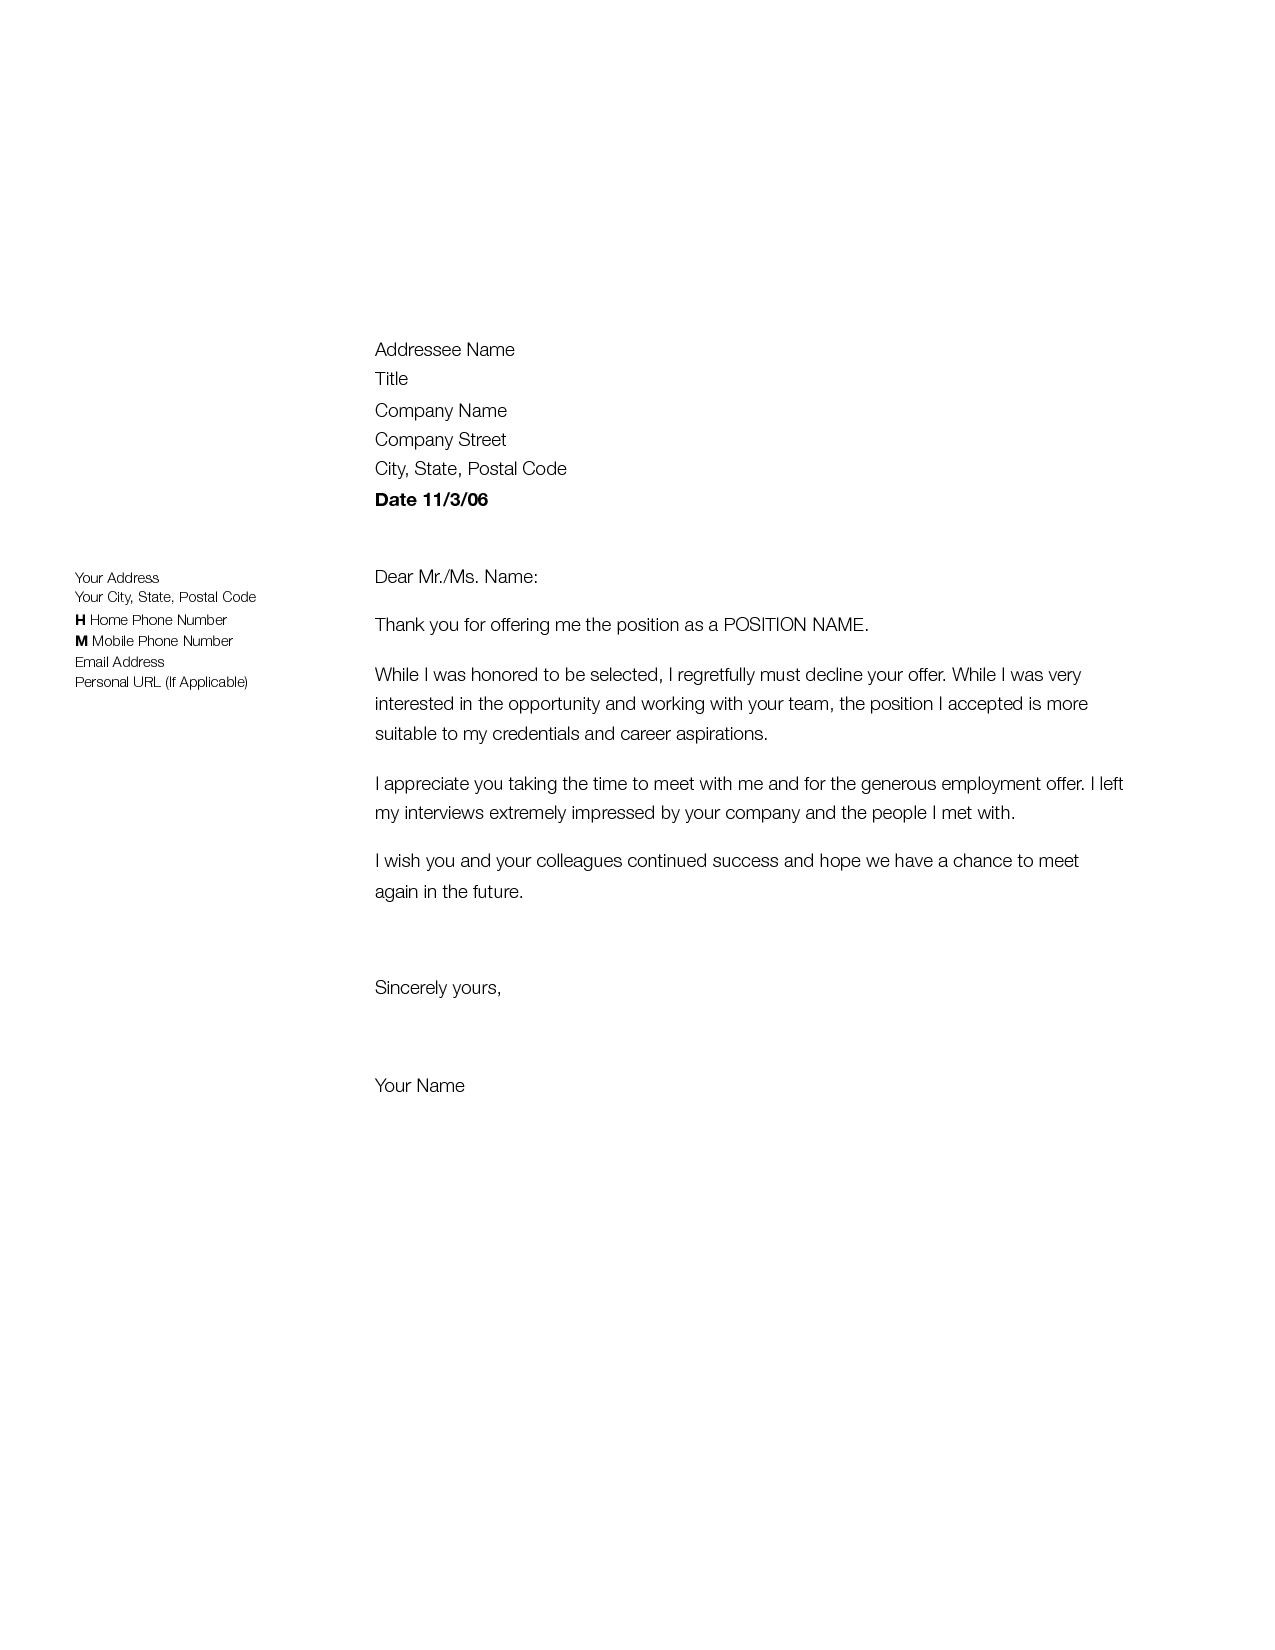 reject offer letter apology letter  offer